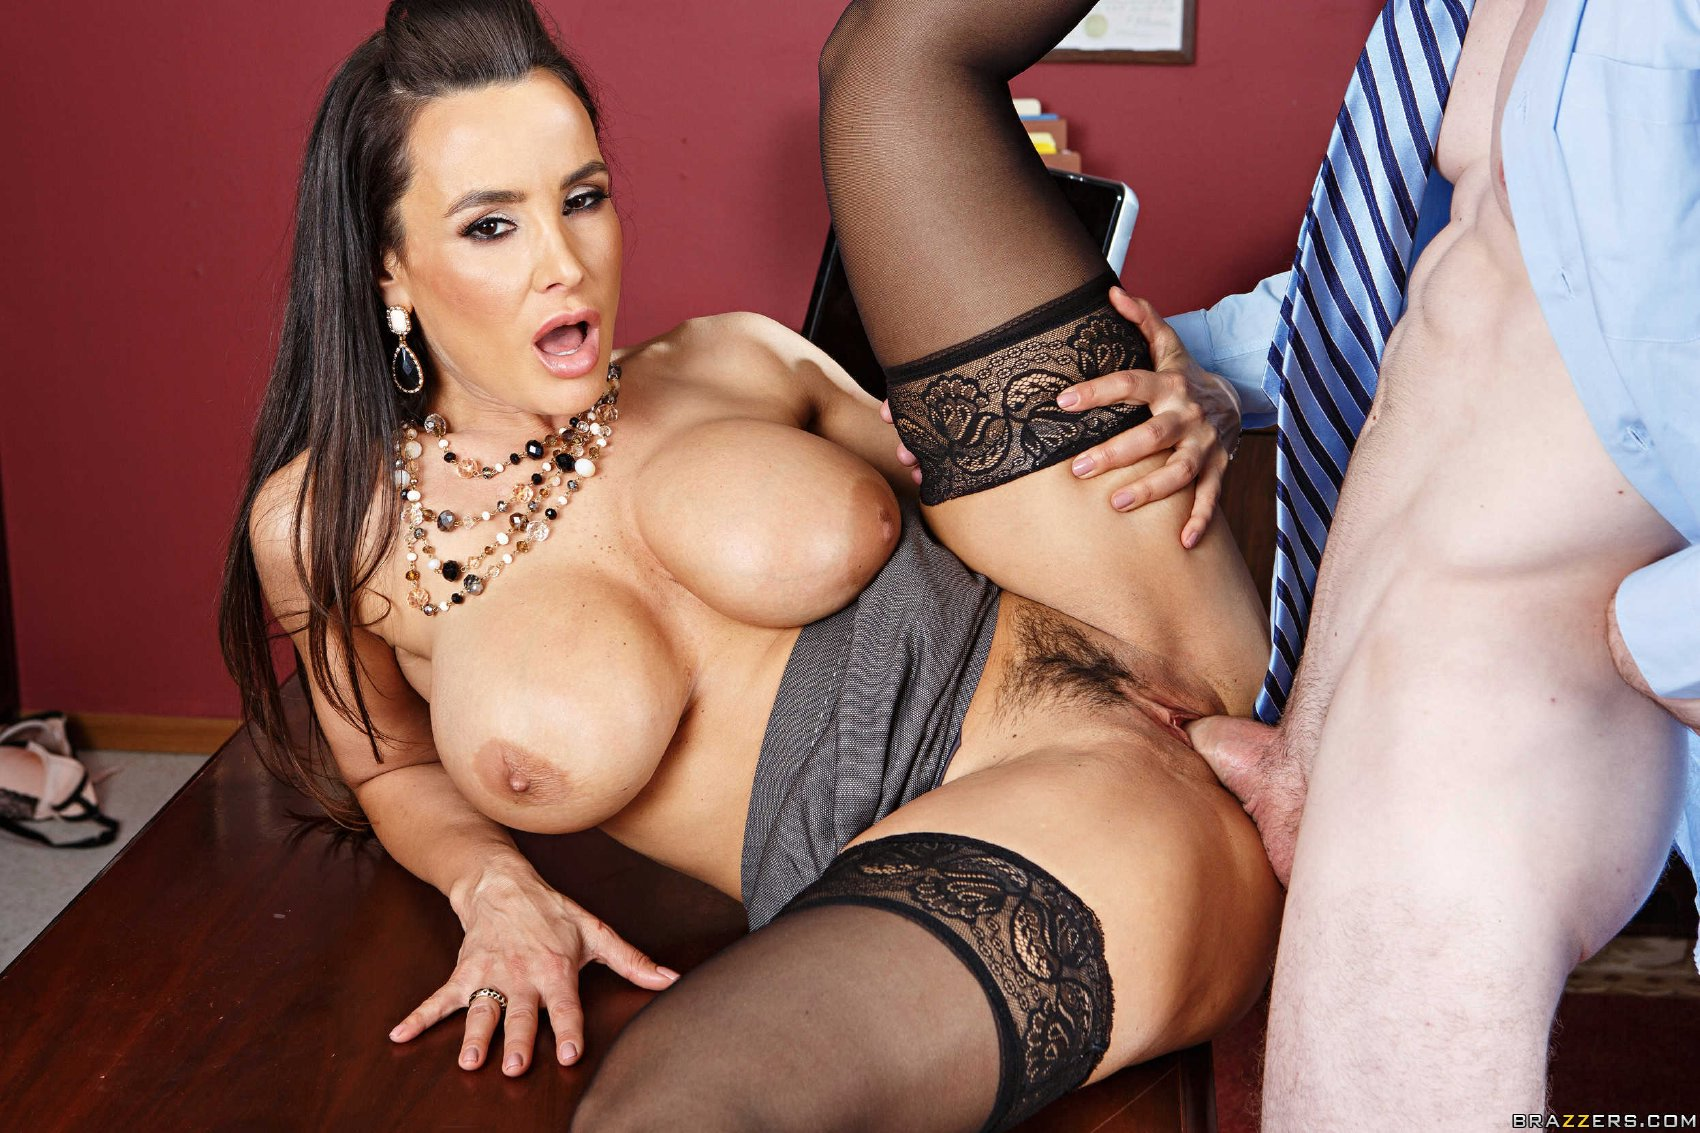 Lisa ann brazzers office authoritative message